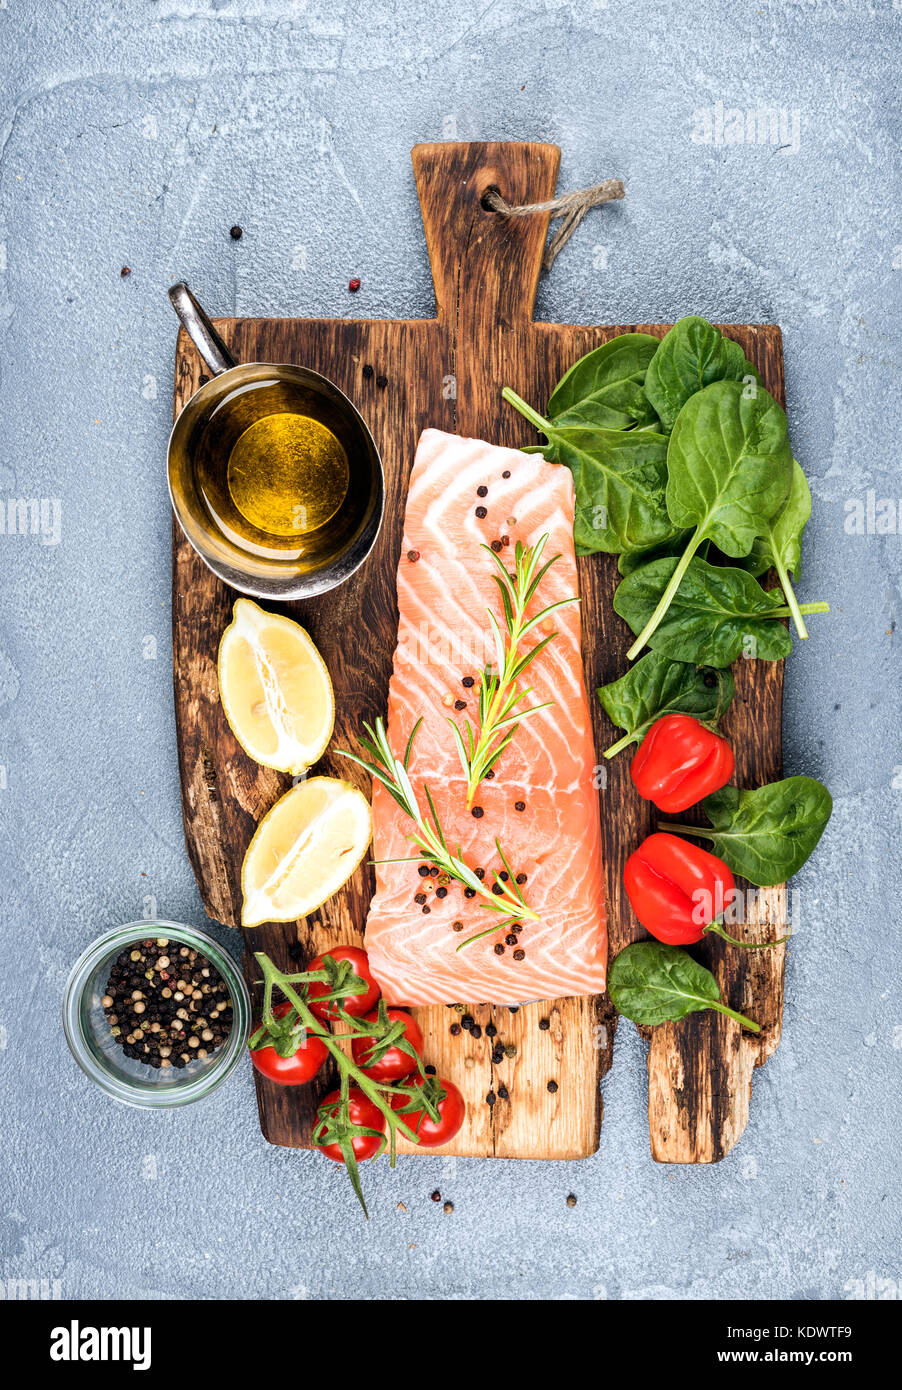 Ingredients for cooking healthy dinner. Raw salmon fillet, spinach, tomatoes, olive oil, lemon, peppers, rosemary - Stock Image